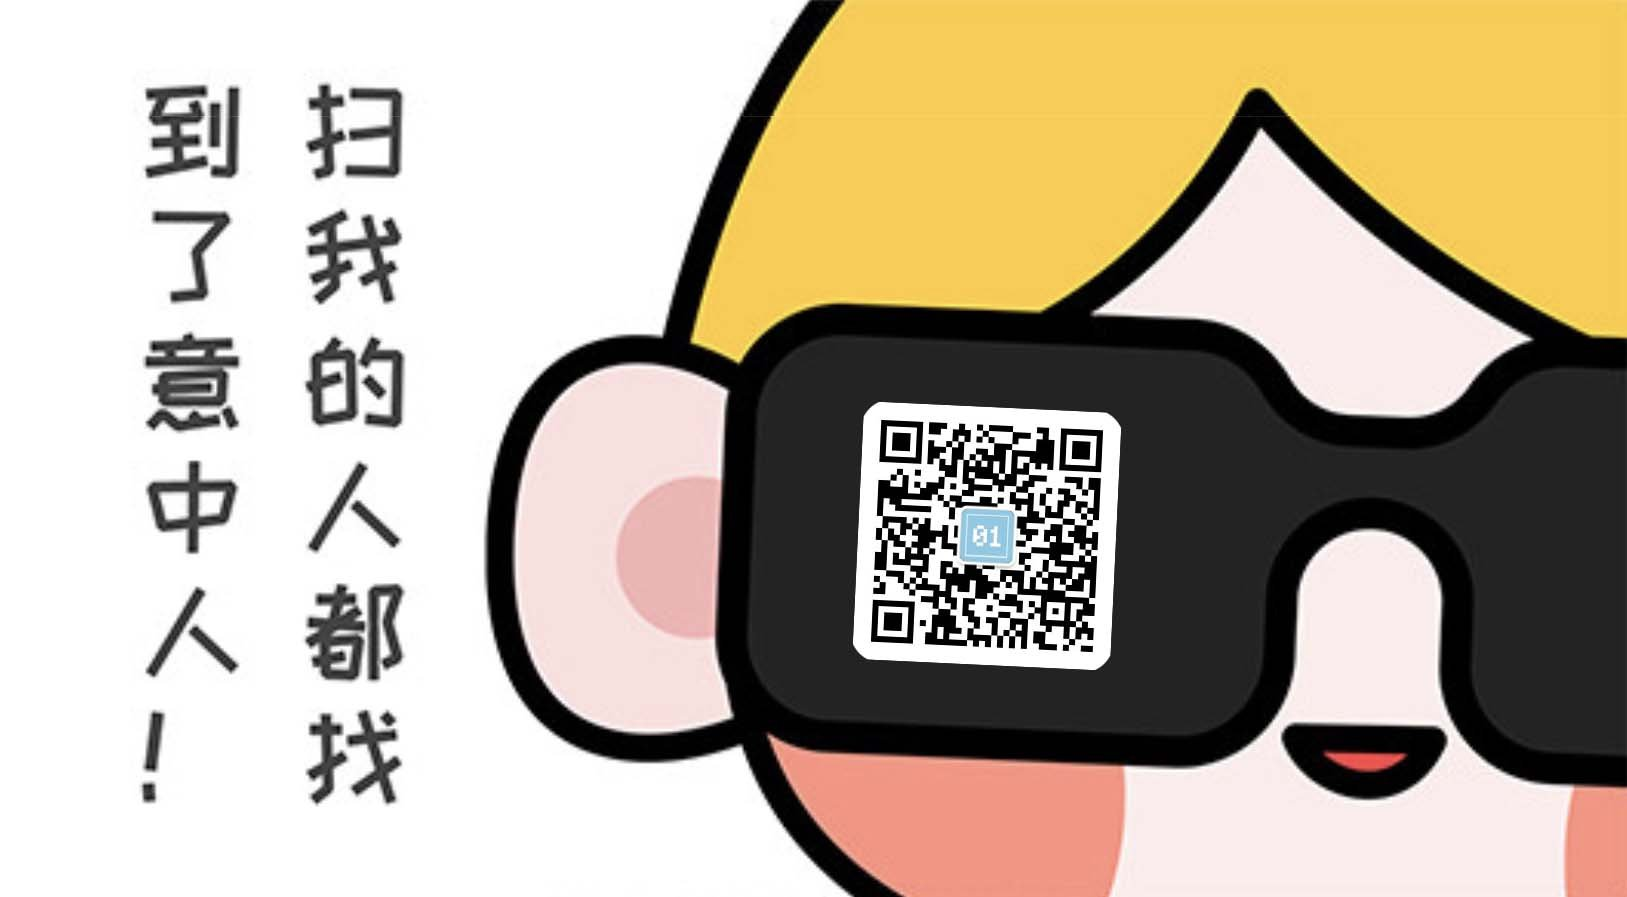 Do you think that blockchain looks like the 200 yuan I borrowed from you?